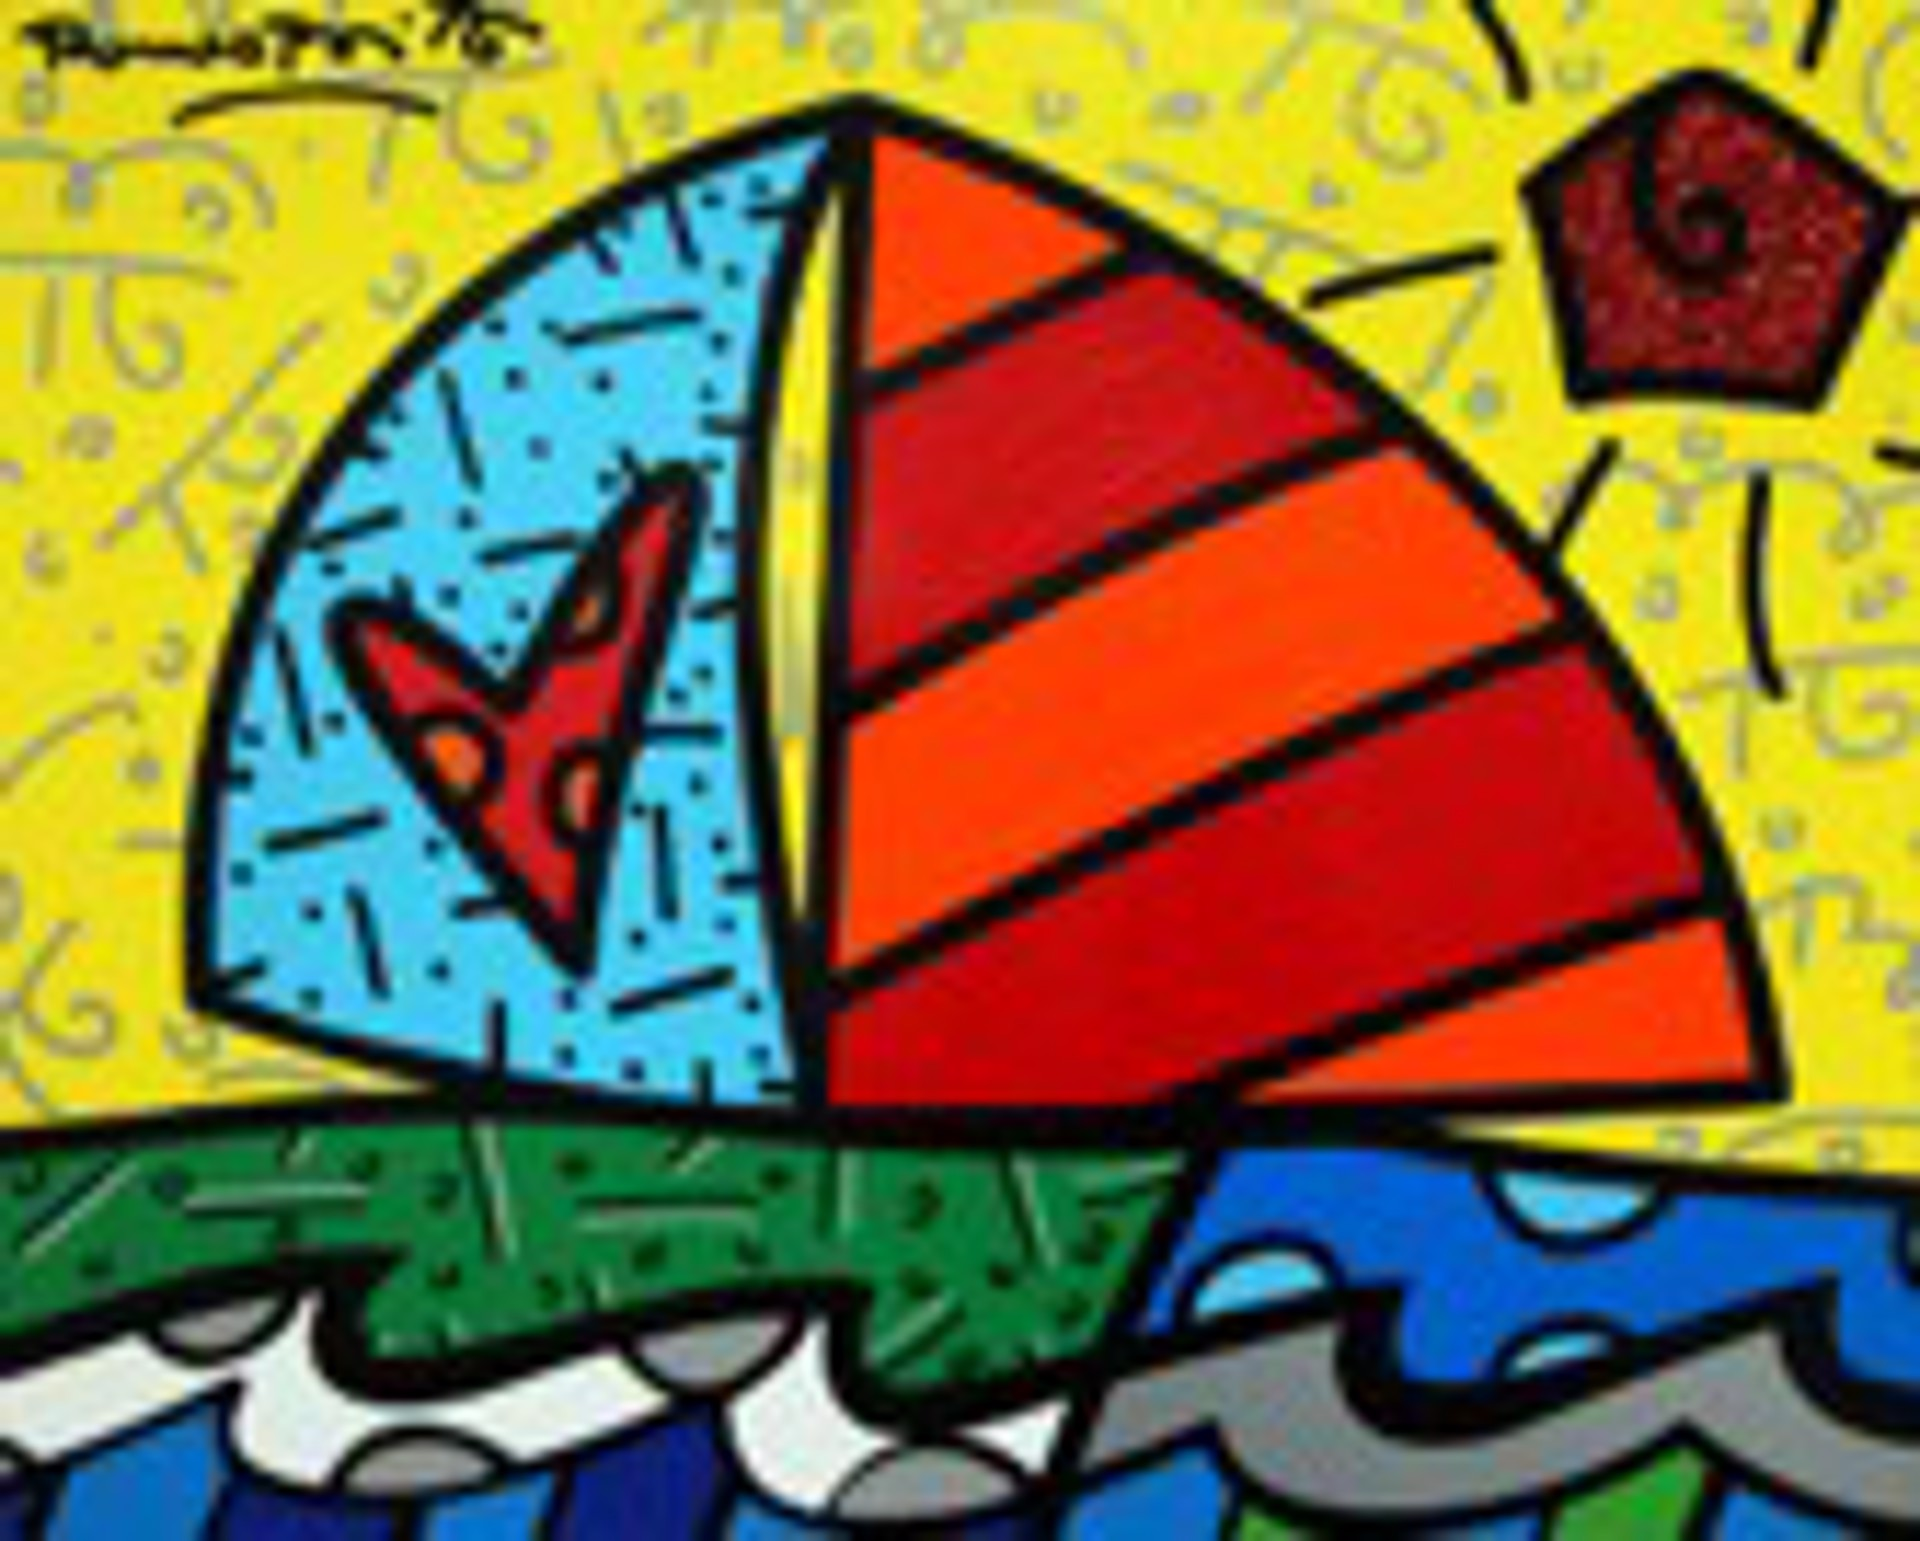 FROM THE ISLAND by Romero Britto